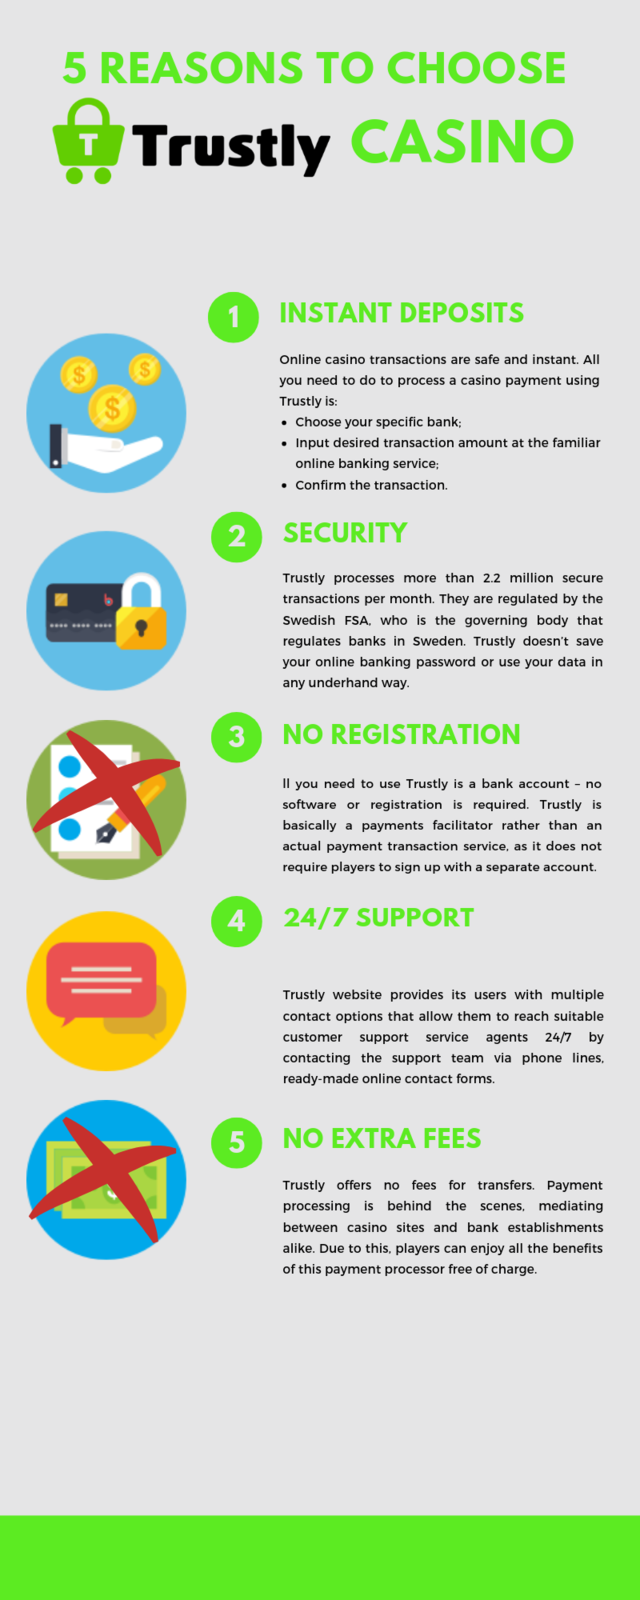 5 reasons to choose trustly casino (1)